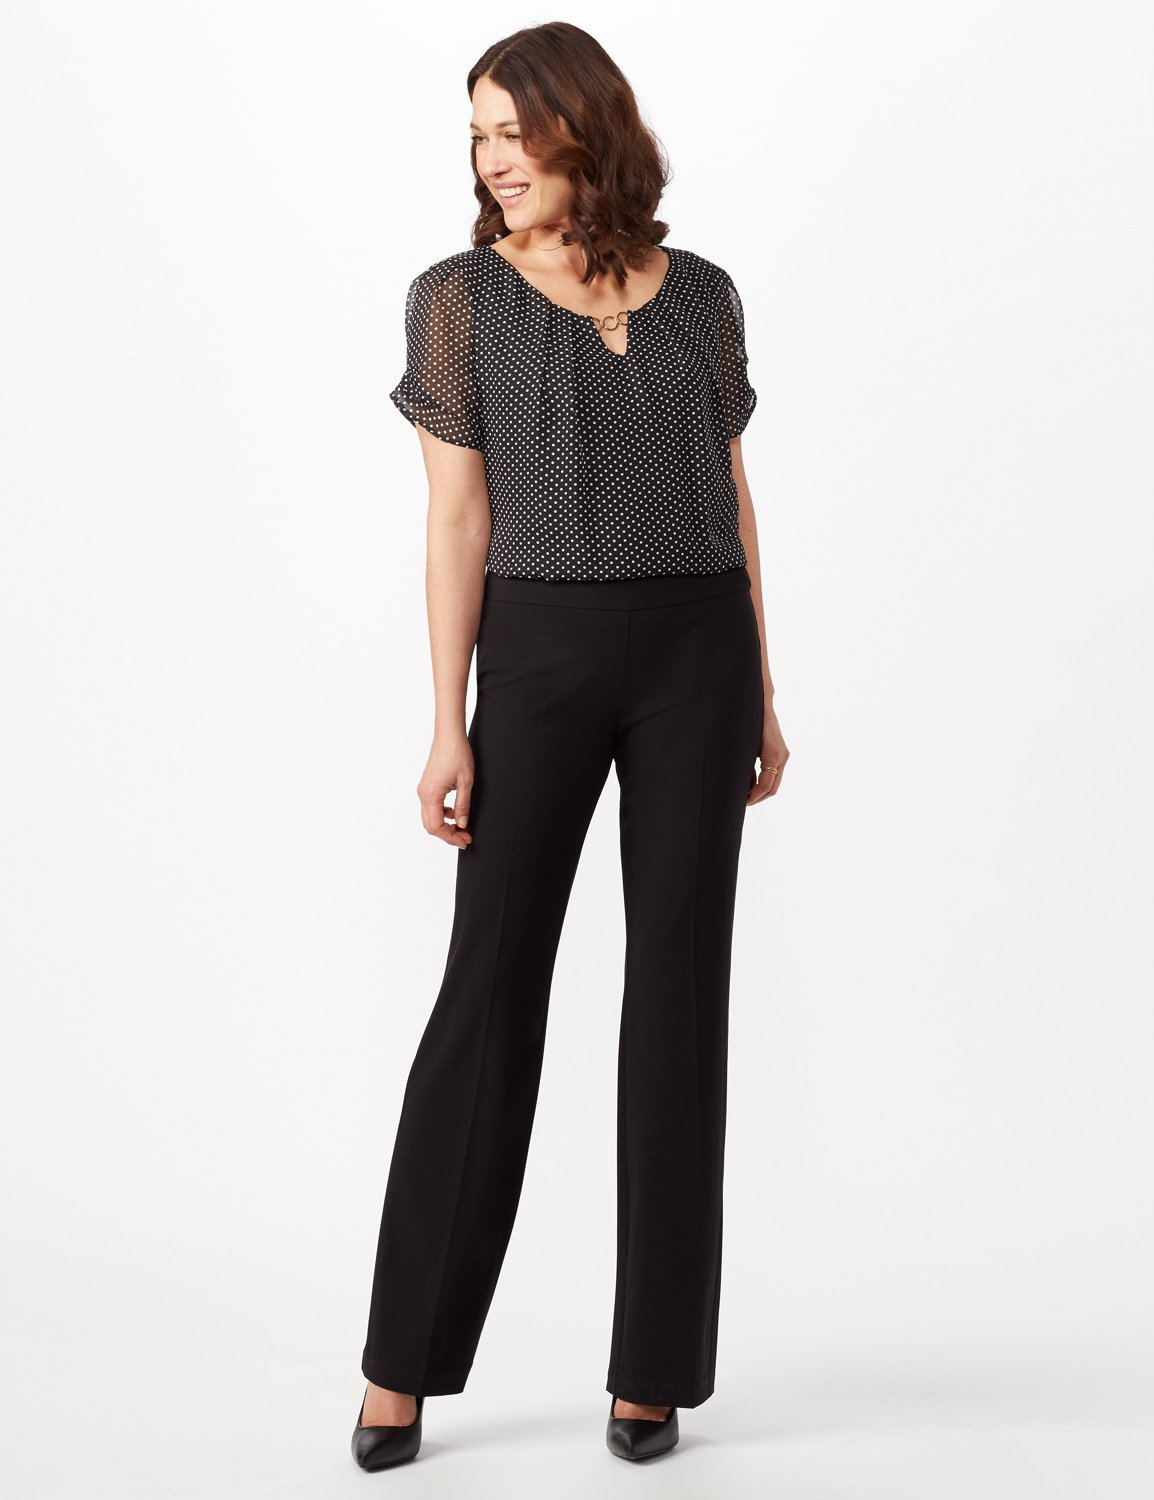 Secret Agent Pull On Tummy Control Pants - Short Length -Black - Front